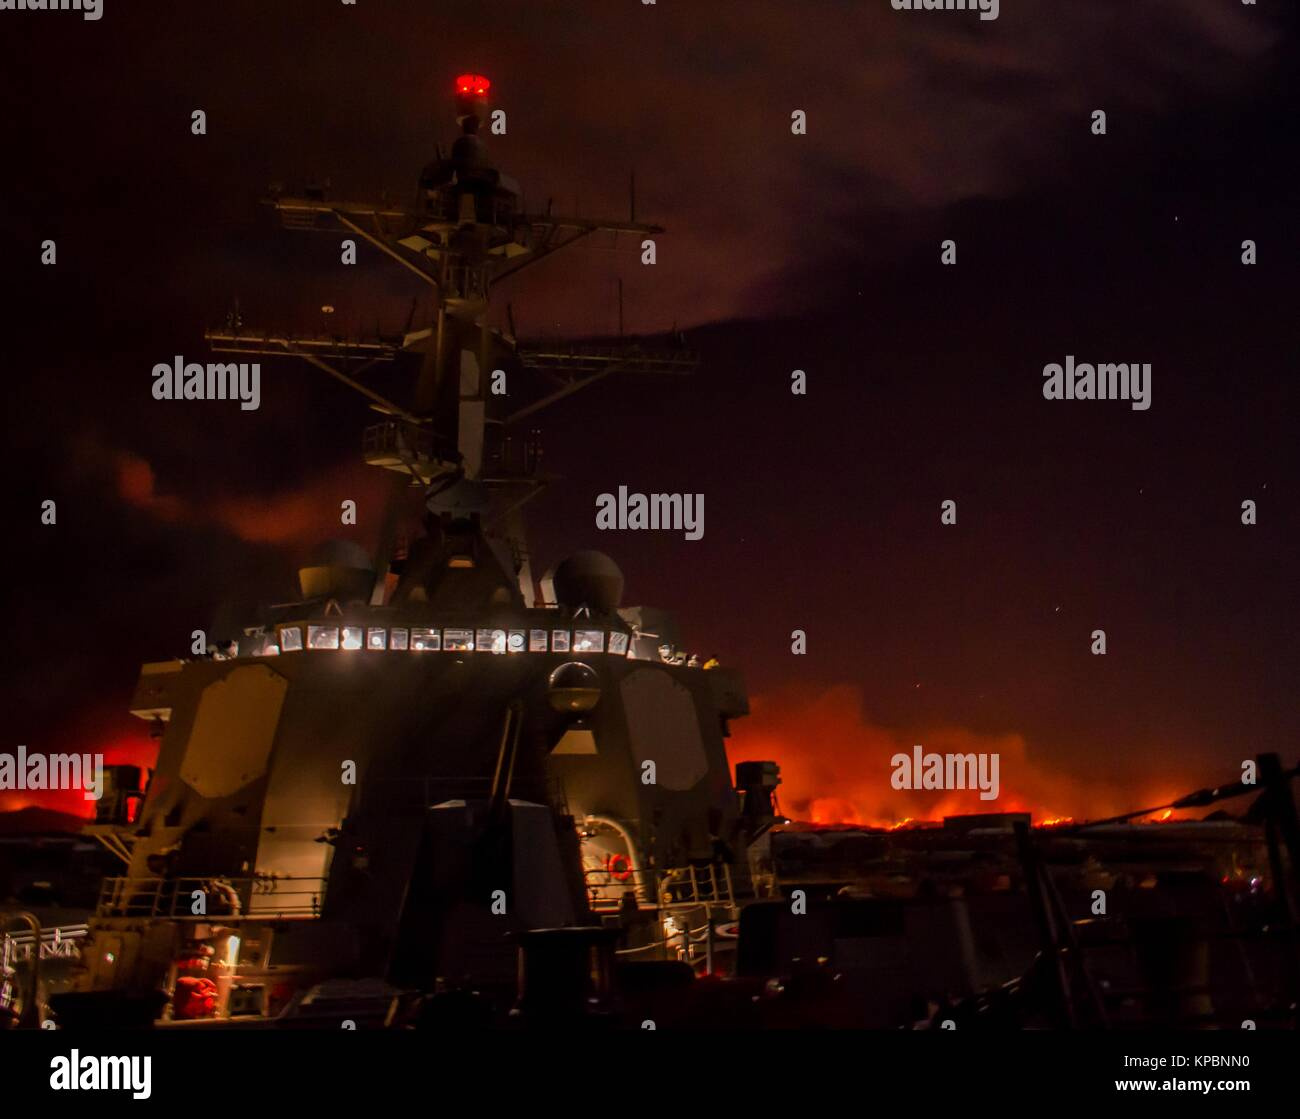 The U.S. Navy Arleigh Burke-class guided-missile destroyer USS Sterett sits pierside at the Naval Base Ventura County - Stock Image